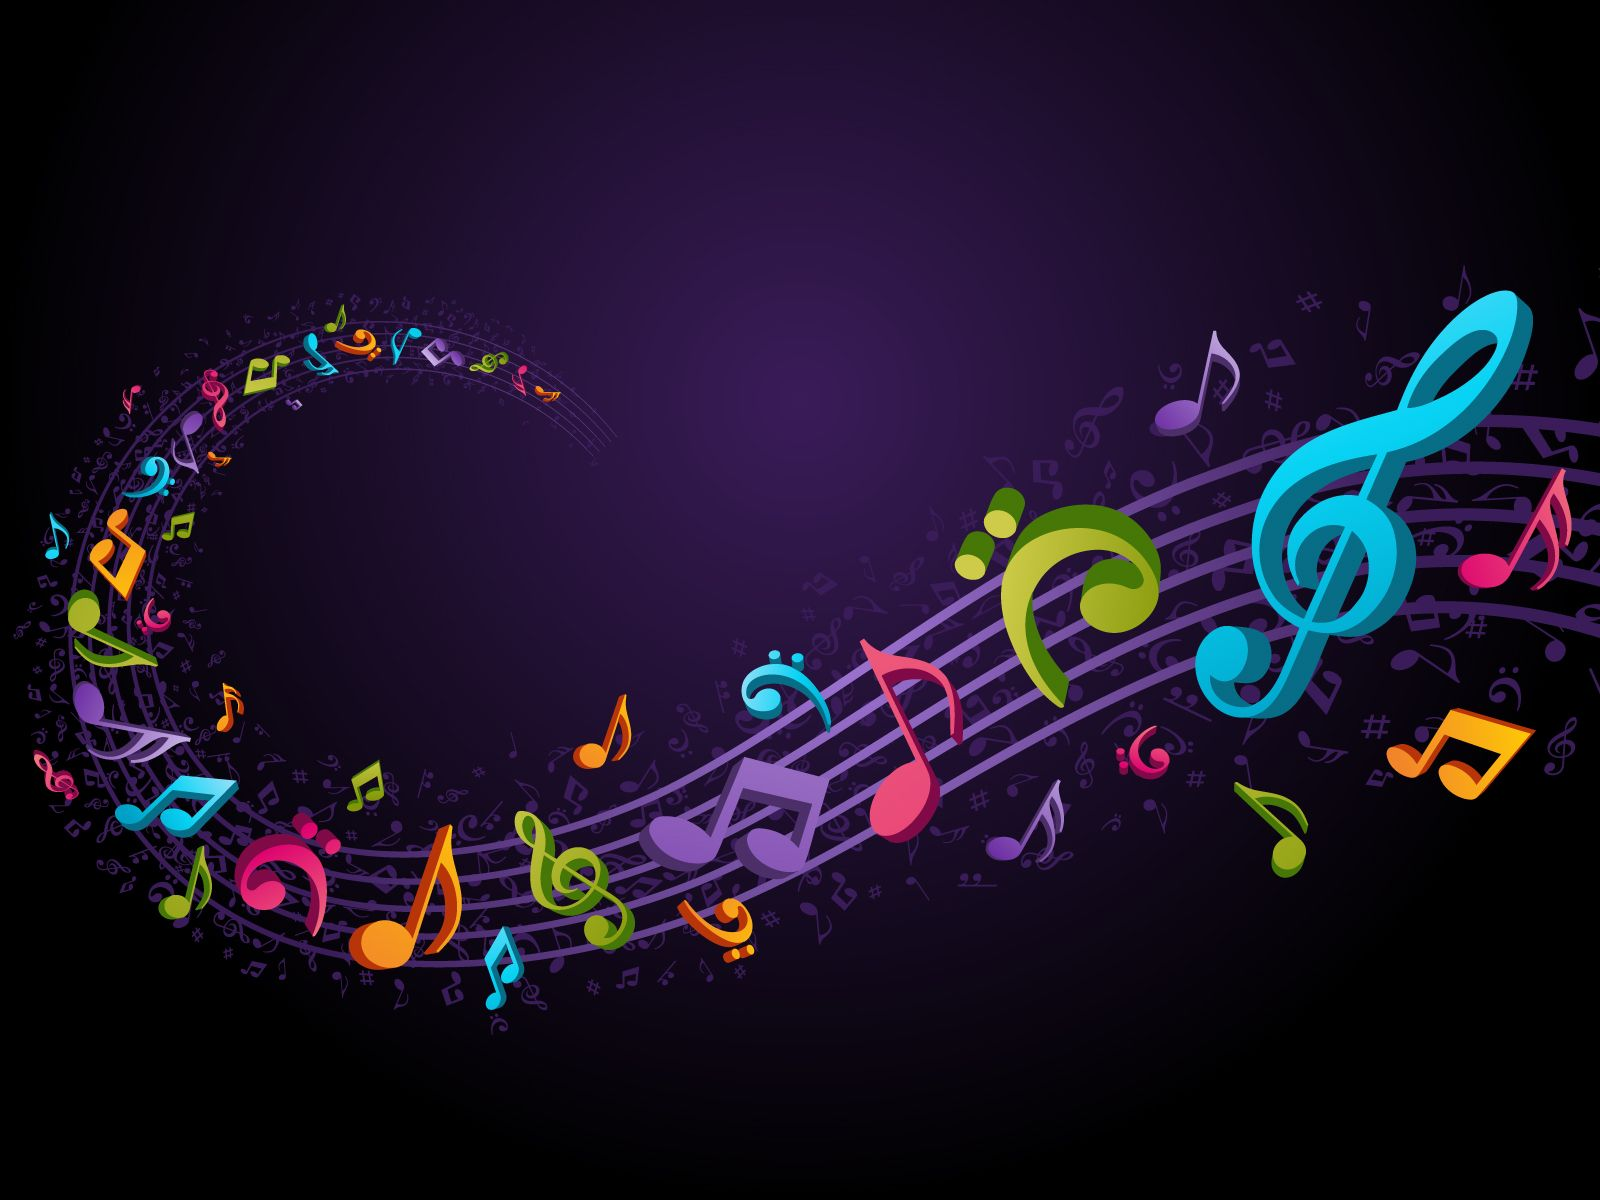 Musical notes staff background on white vector by tassel78 image - 25 Music Wallpapers Backgrounds Images Pictures Design Trends